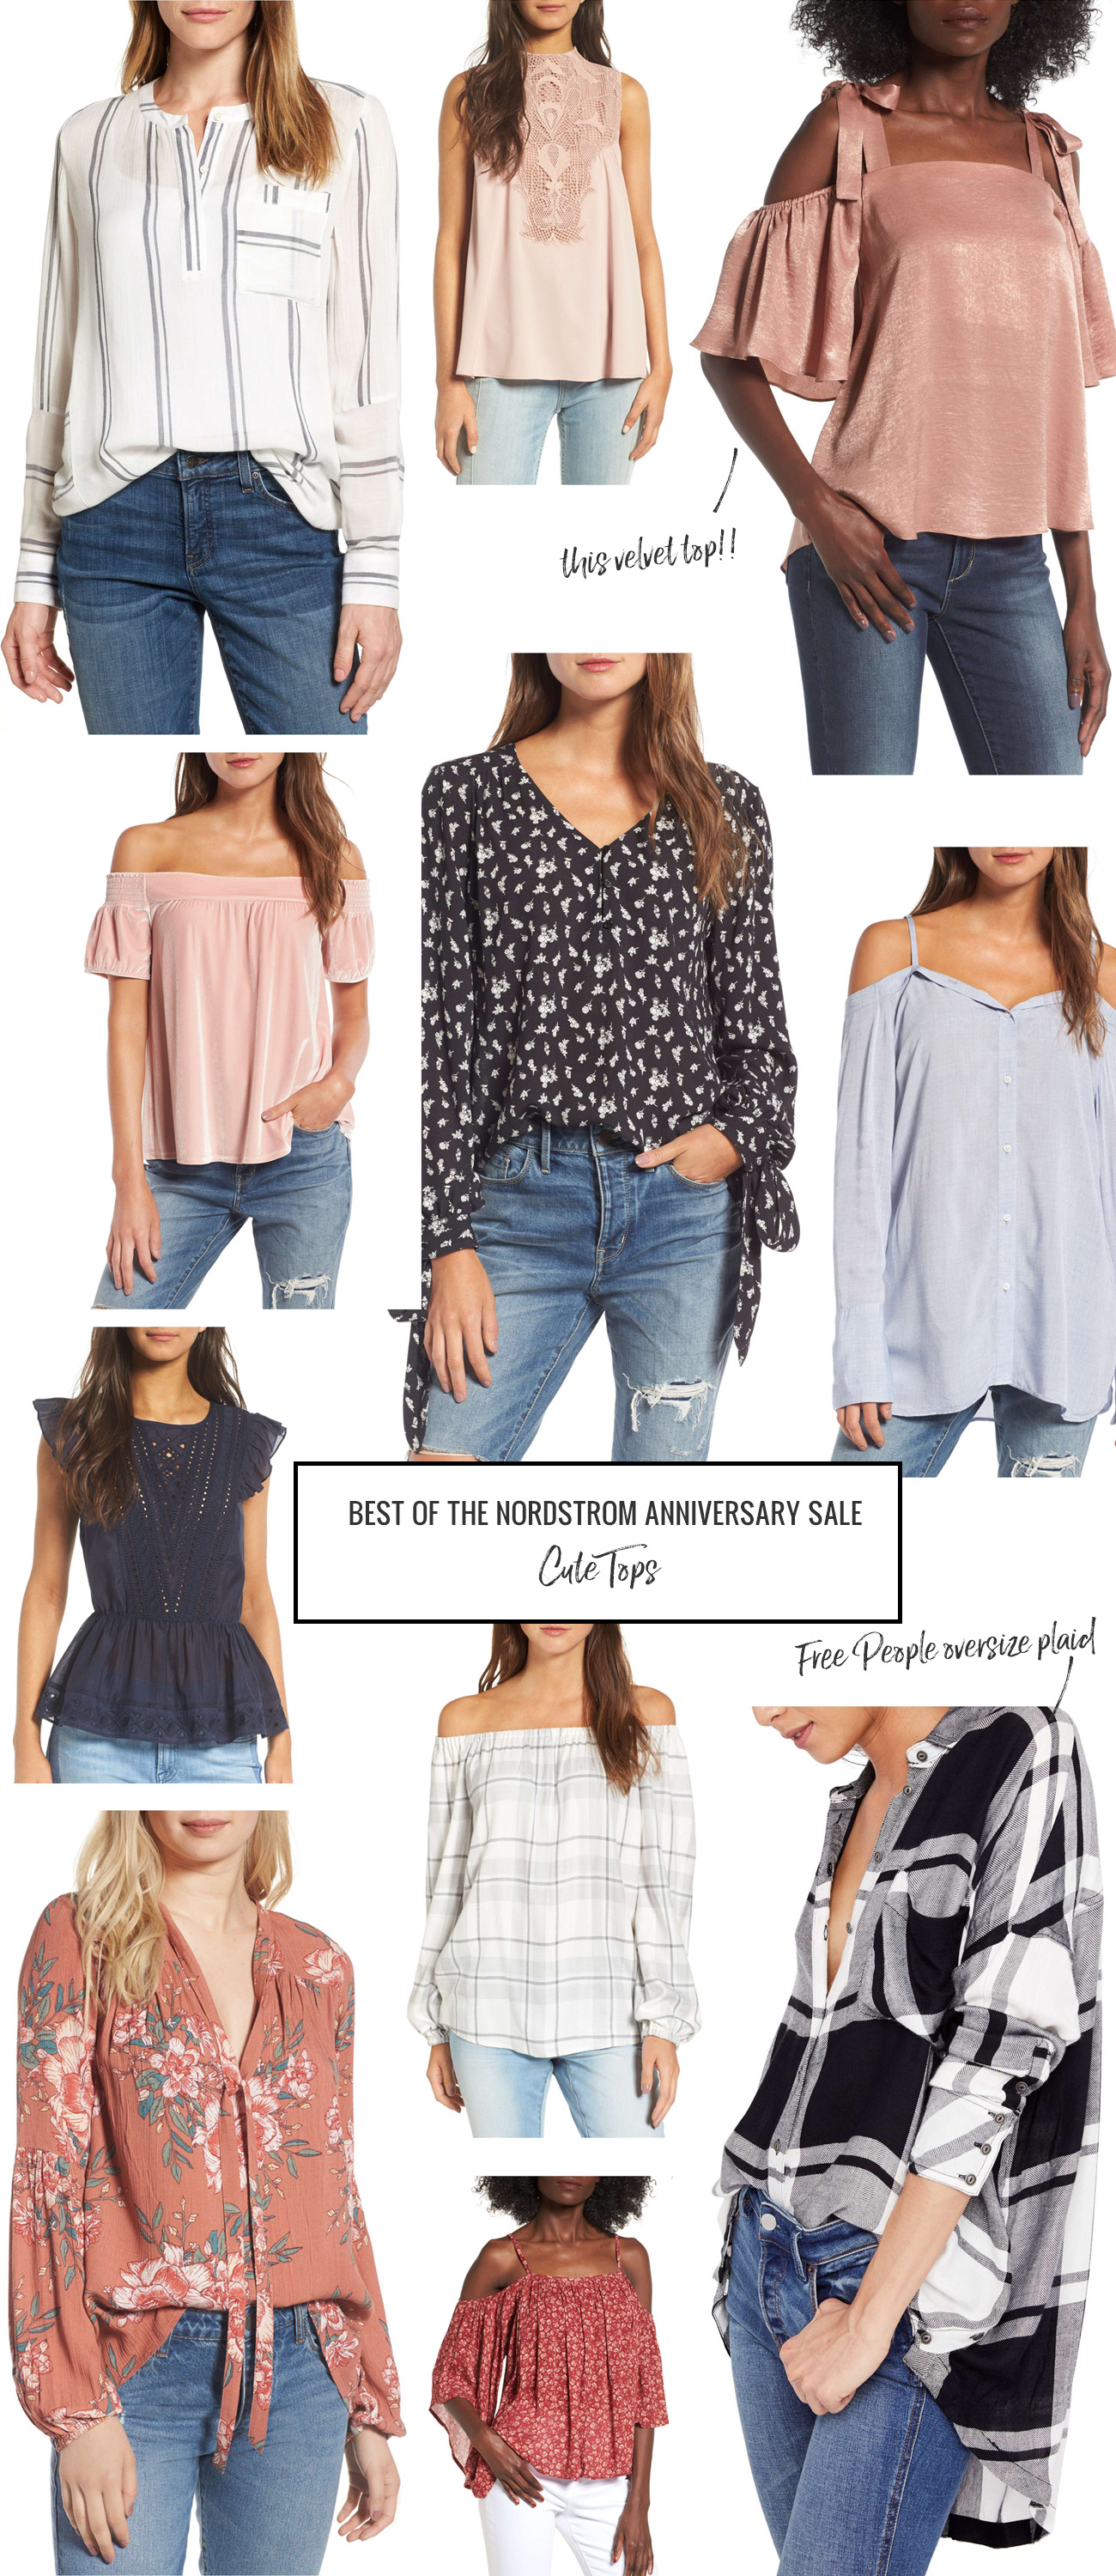 nordstrom sale cute tops